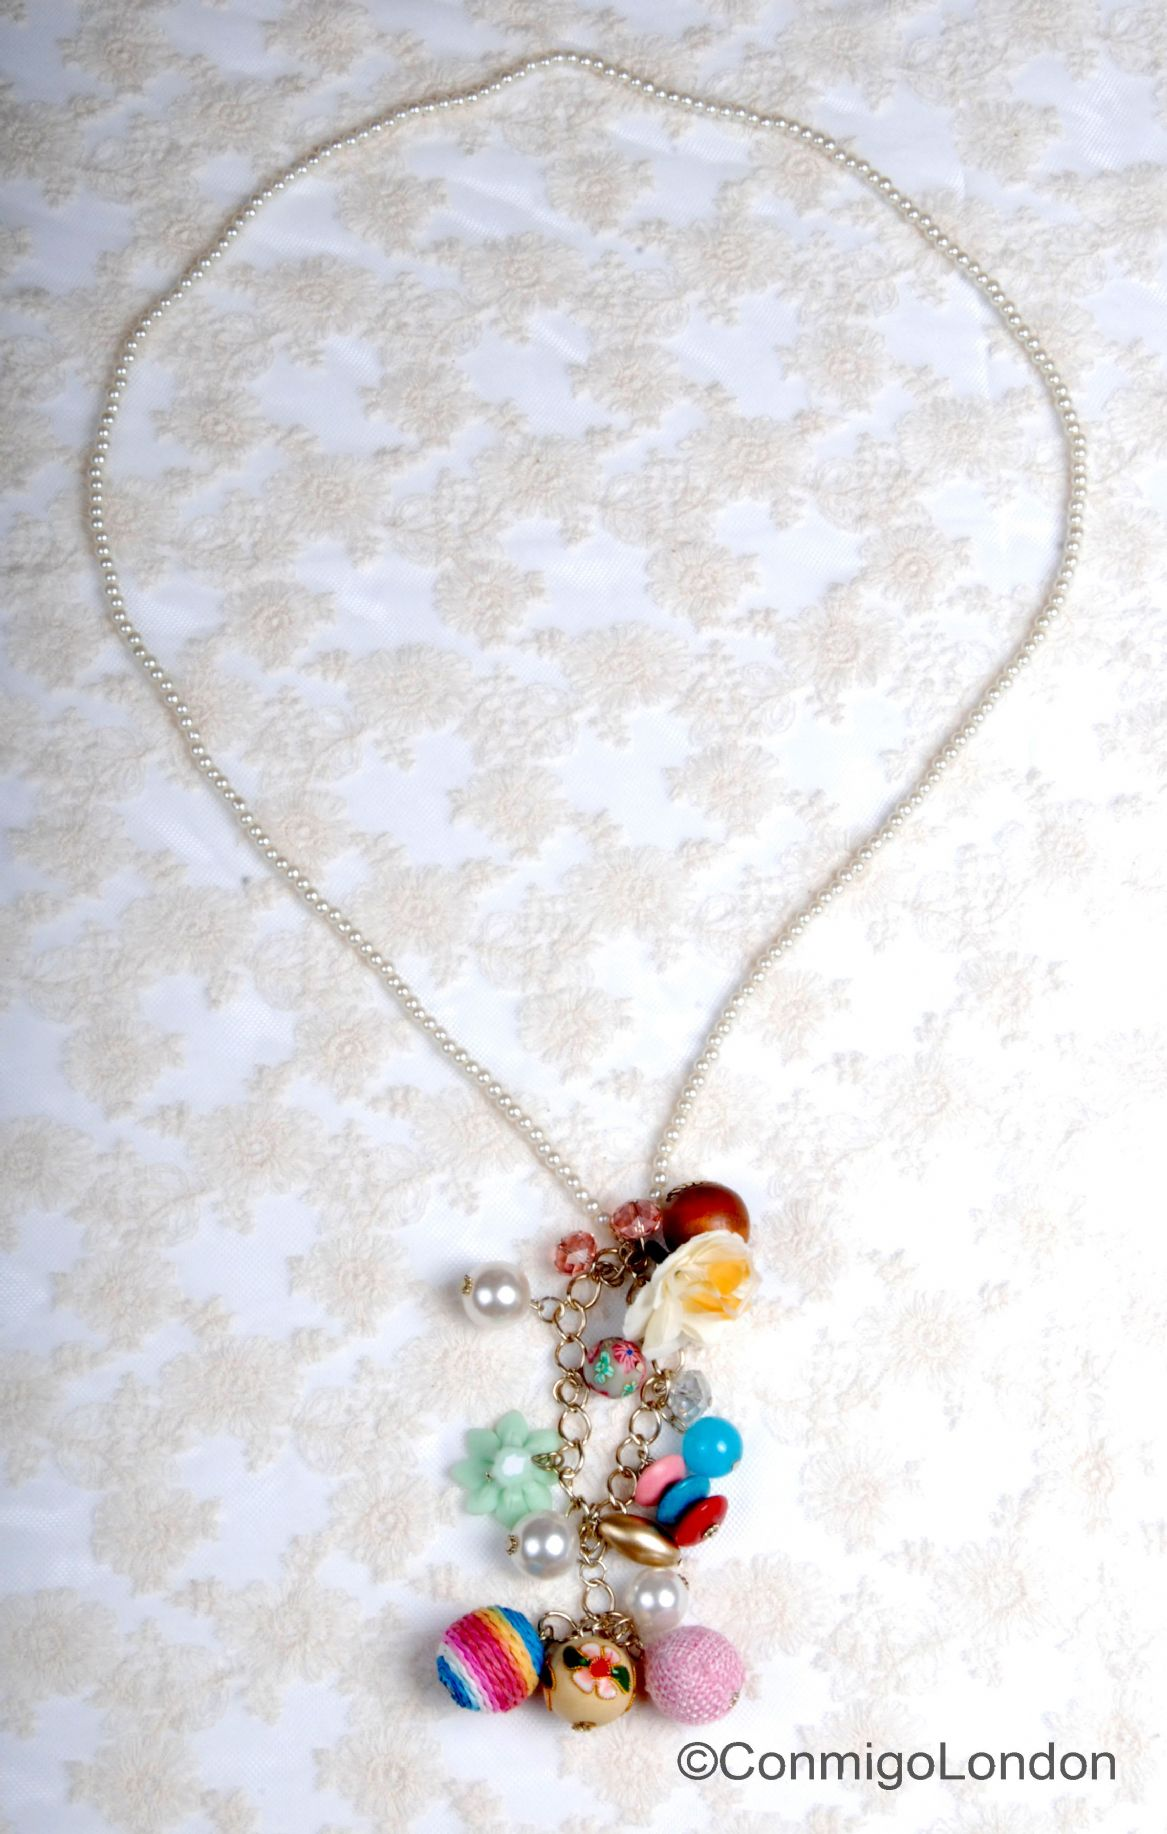 http://www.conmigolondon.co.uk/ekmps/shops/conmigo/images/j01004-highly-attractive-and-colourful-pendent-featuring-flowers-and-wooden-fabric-and-crystal-baubles-%5B2%5D-49-p.jpg